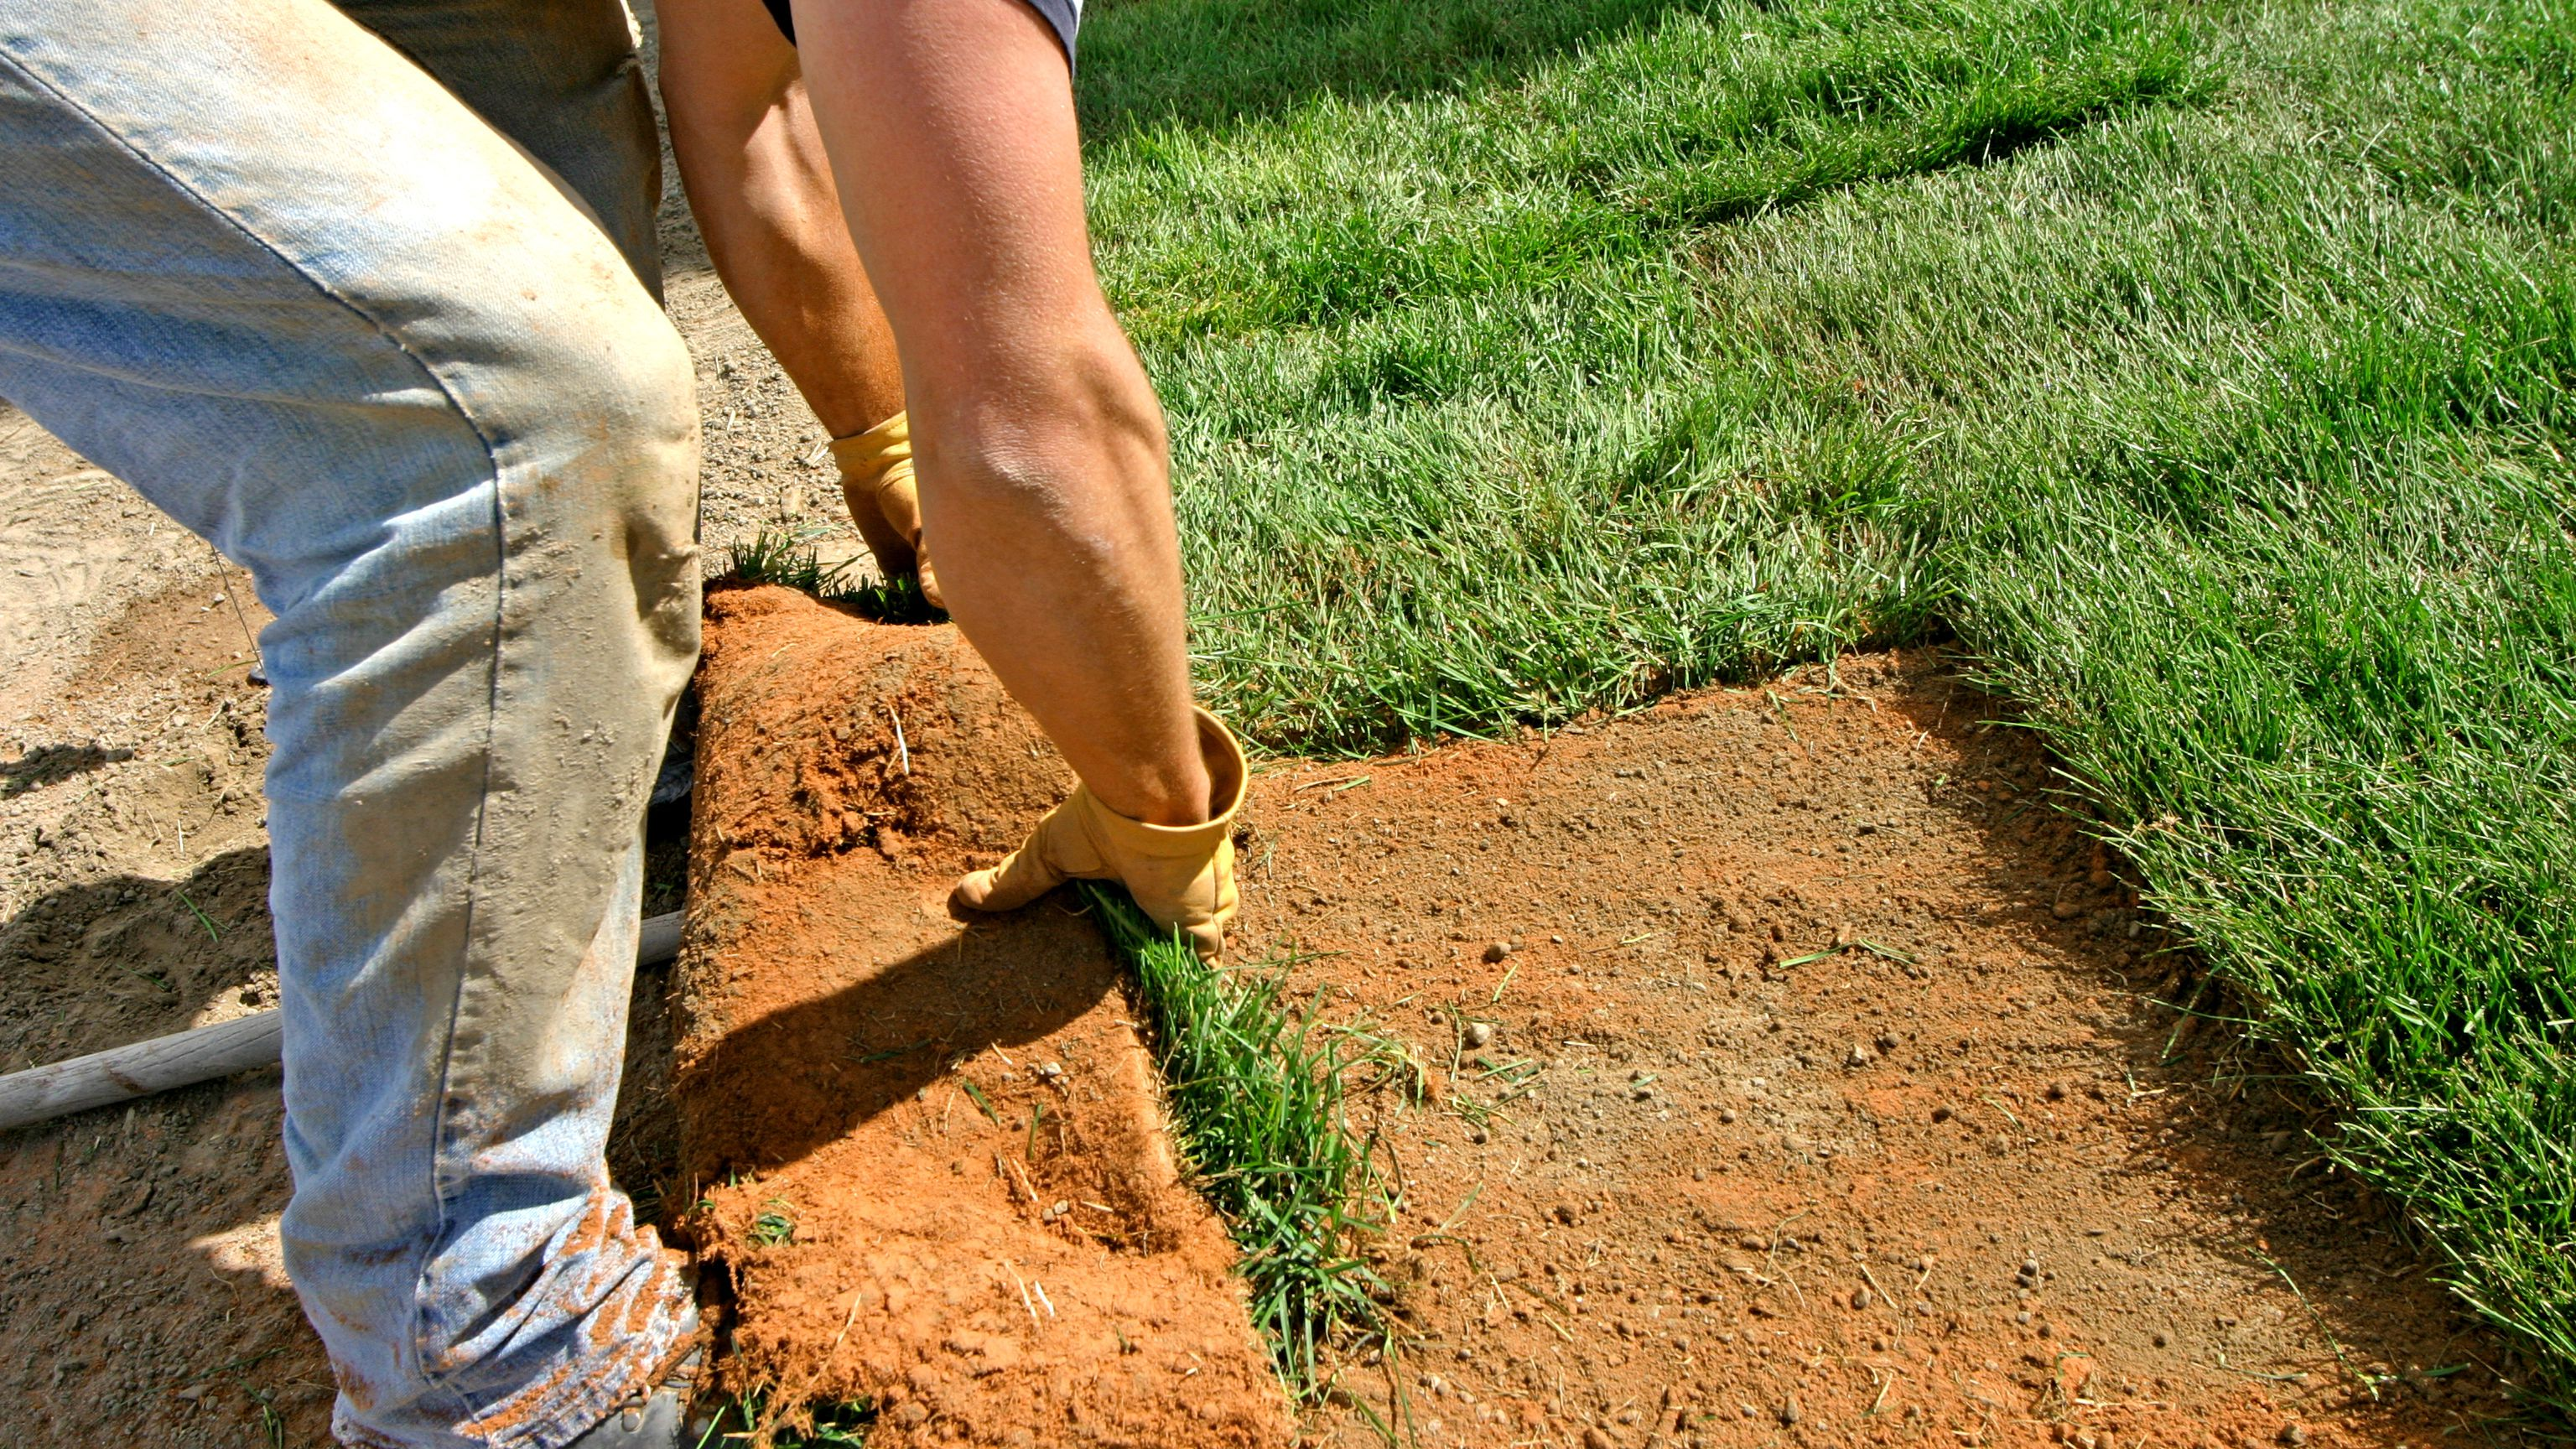 How to Lay Sod to Start a New Lawn